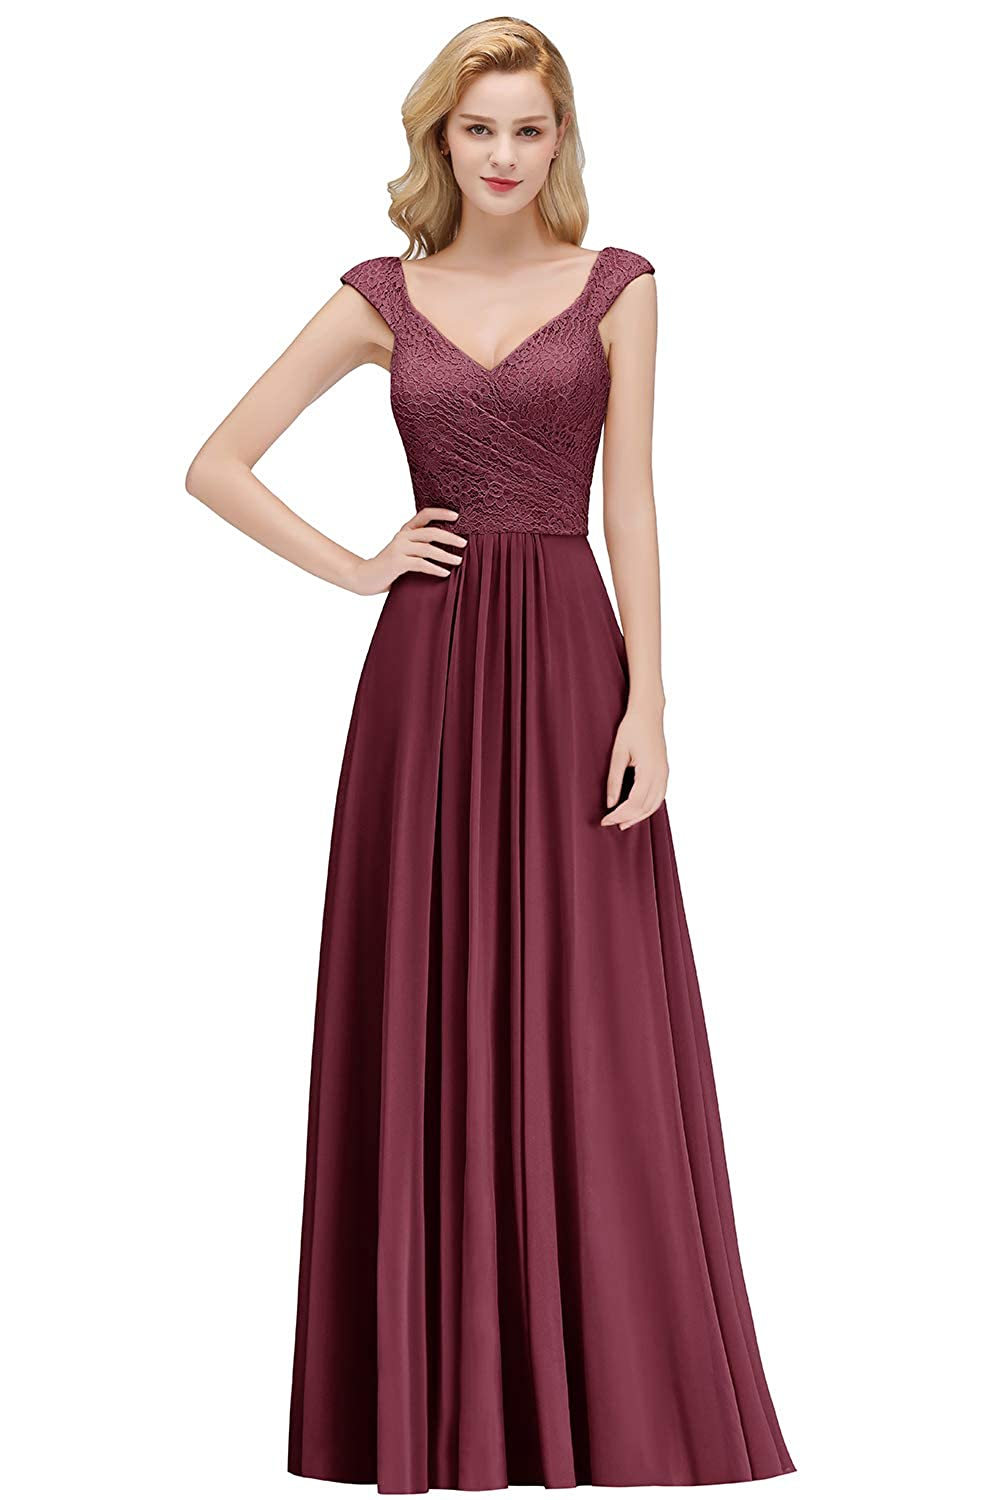 a29e815c420 MisShow Women s Elegant Deep V Neck Long Formal Evening Gowns Bridesmaid  Dresses at Amazon Women s Clothing store